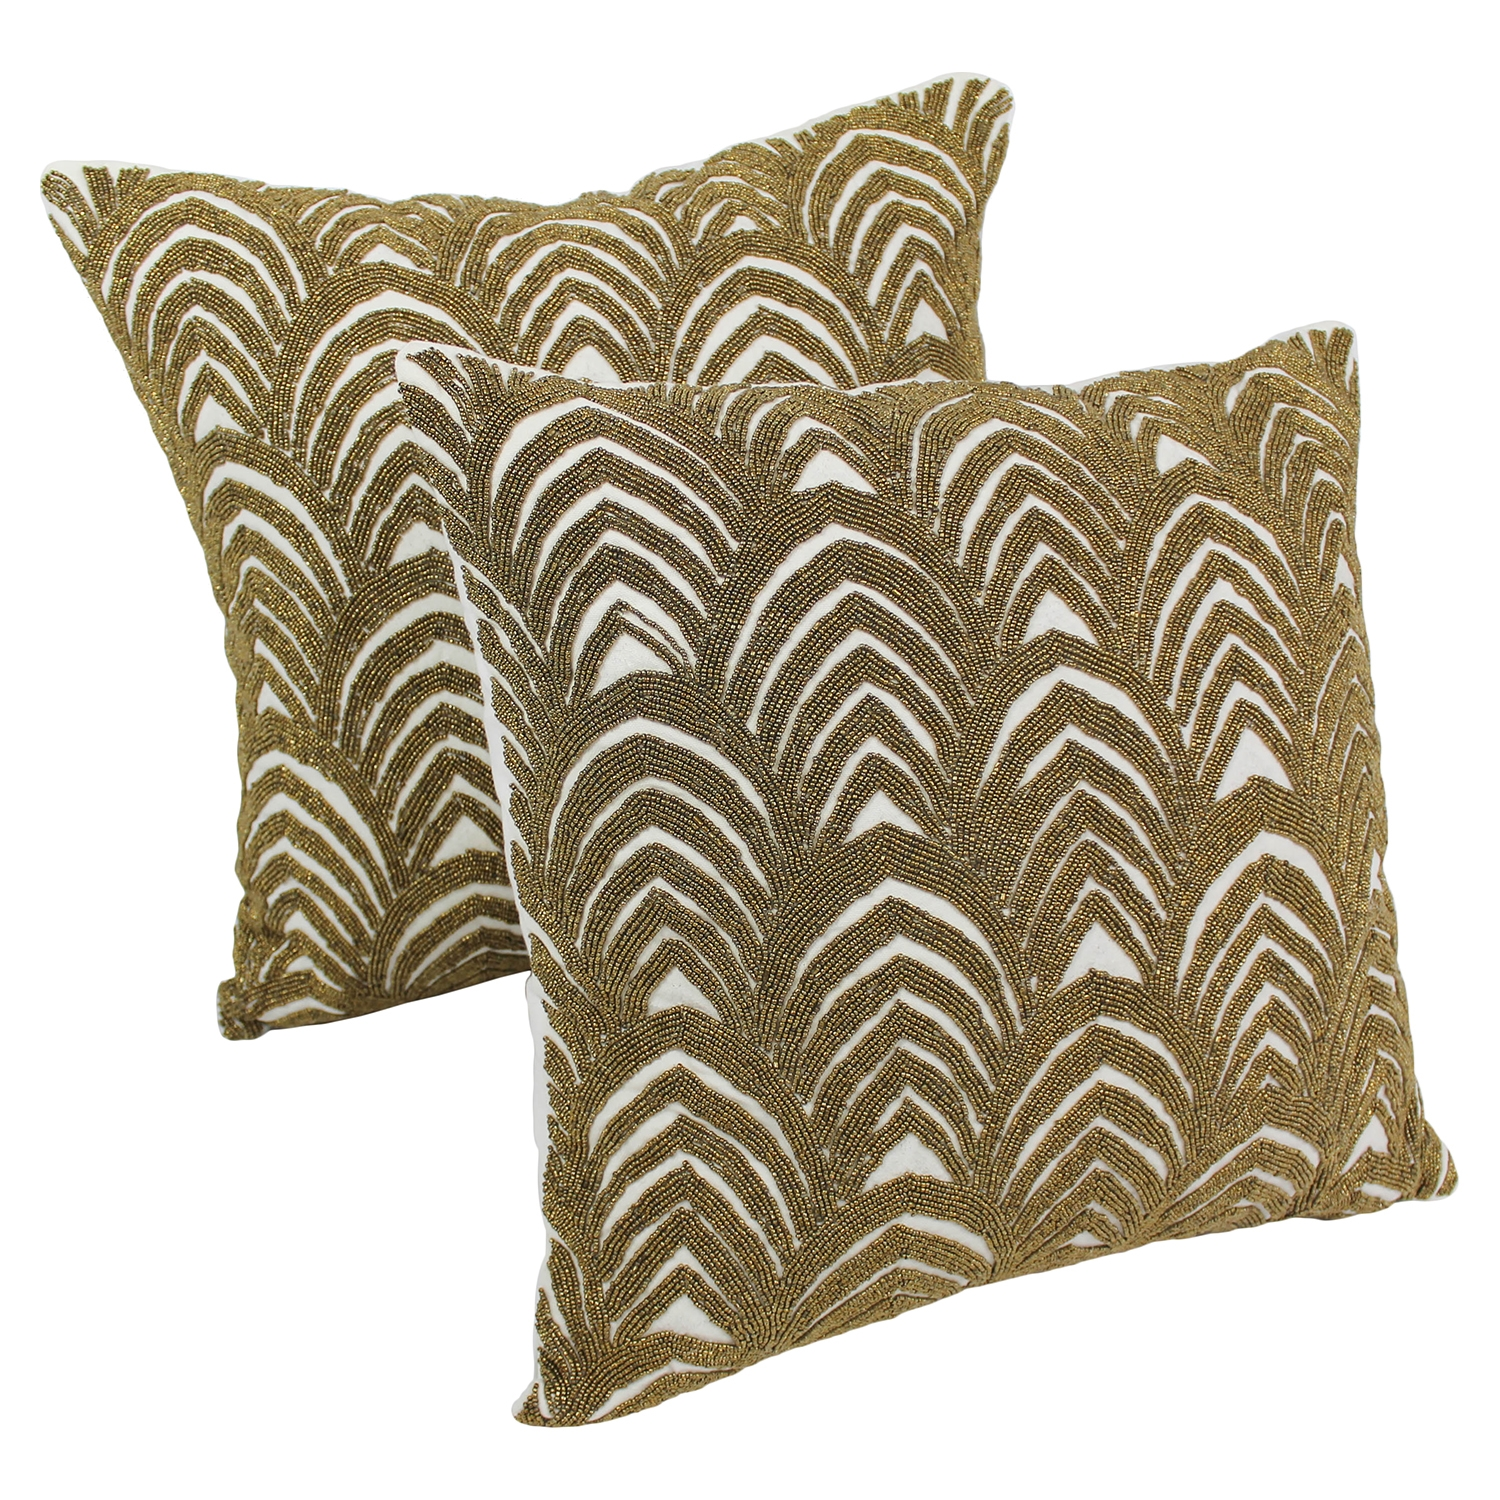 "Arching Fans Beaded 20"" Throw Pillows in Gold Beads and Ivory Fabric (Set of 2) - BLZ-IN-20273-20-S2-IV-GO"